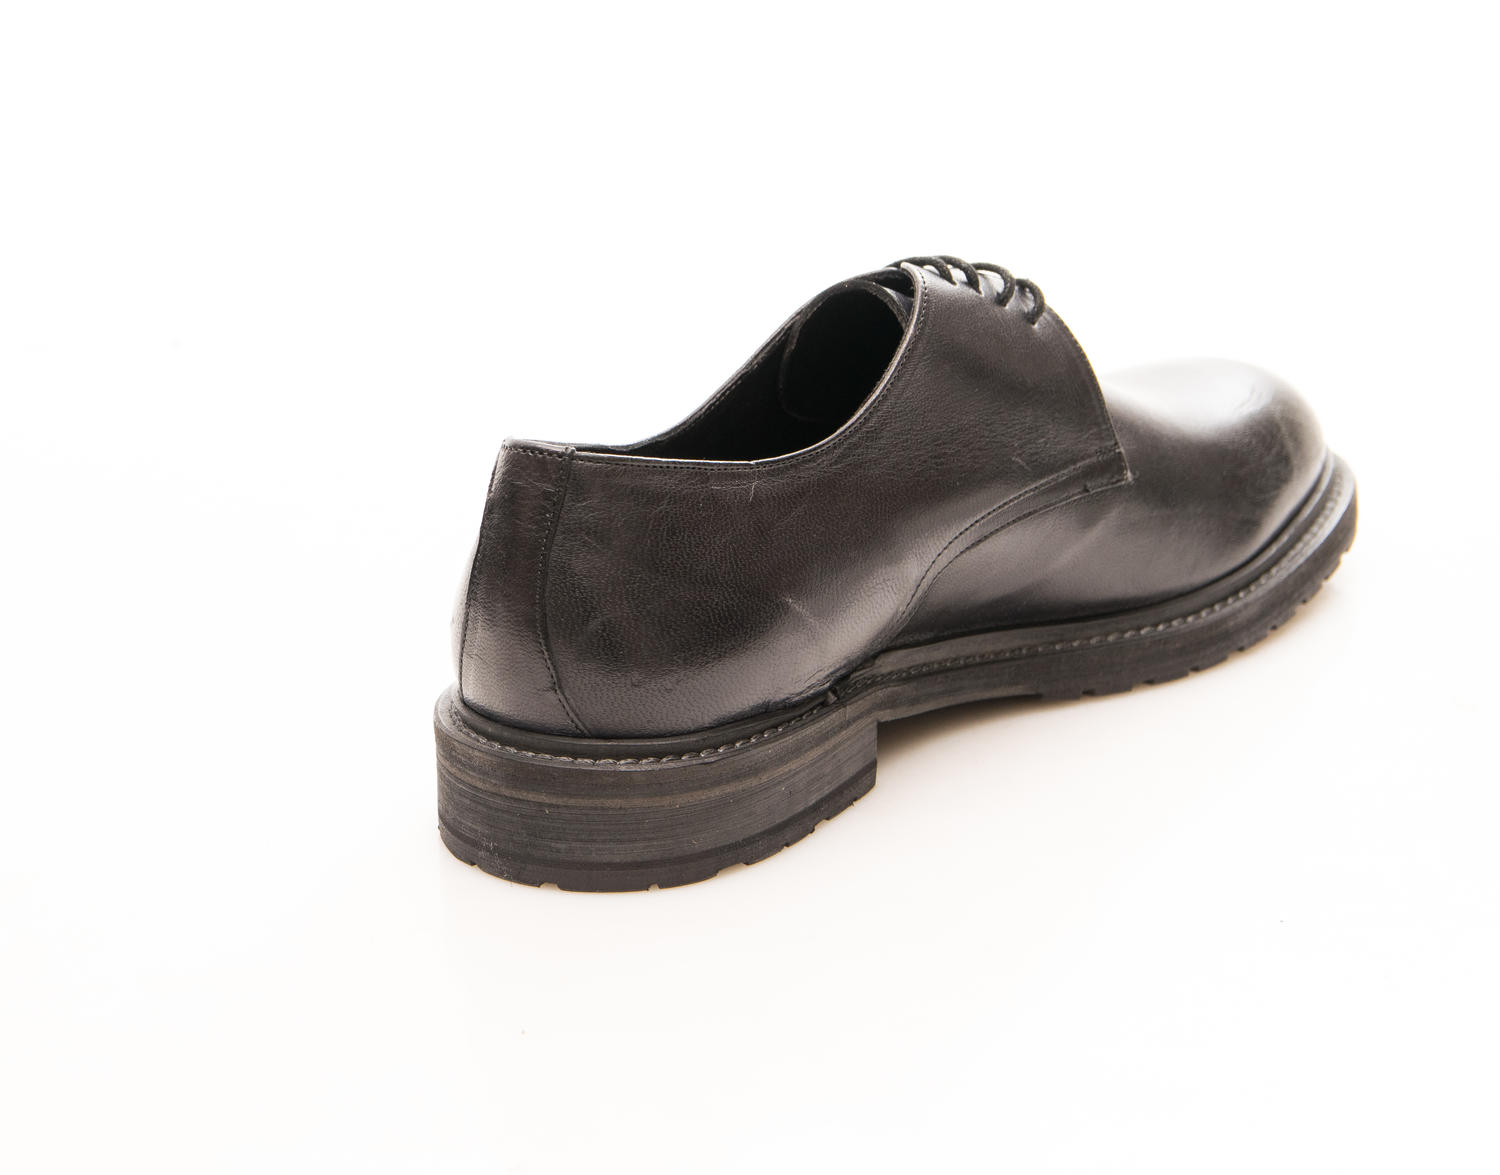 1953 In Made Italy Cuir Lacets Noir Minoronzoni En Chaussures d7xYdfq